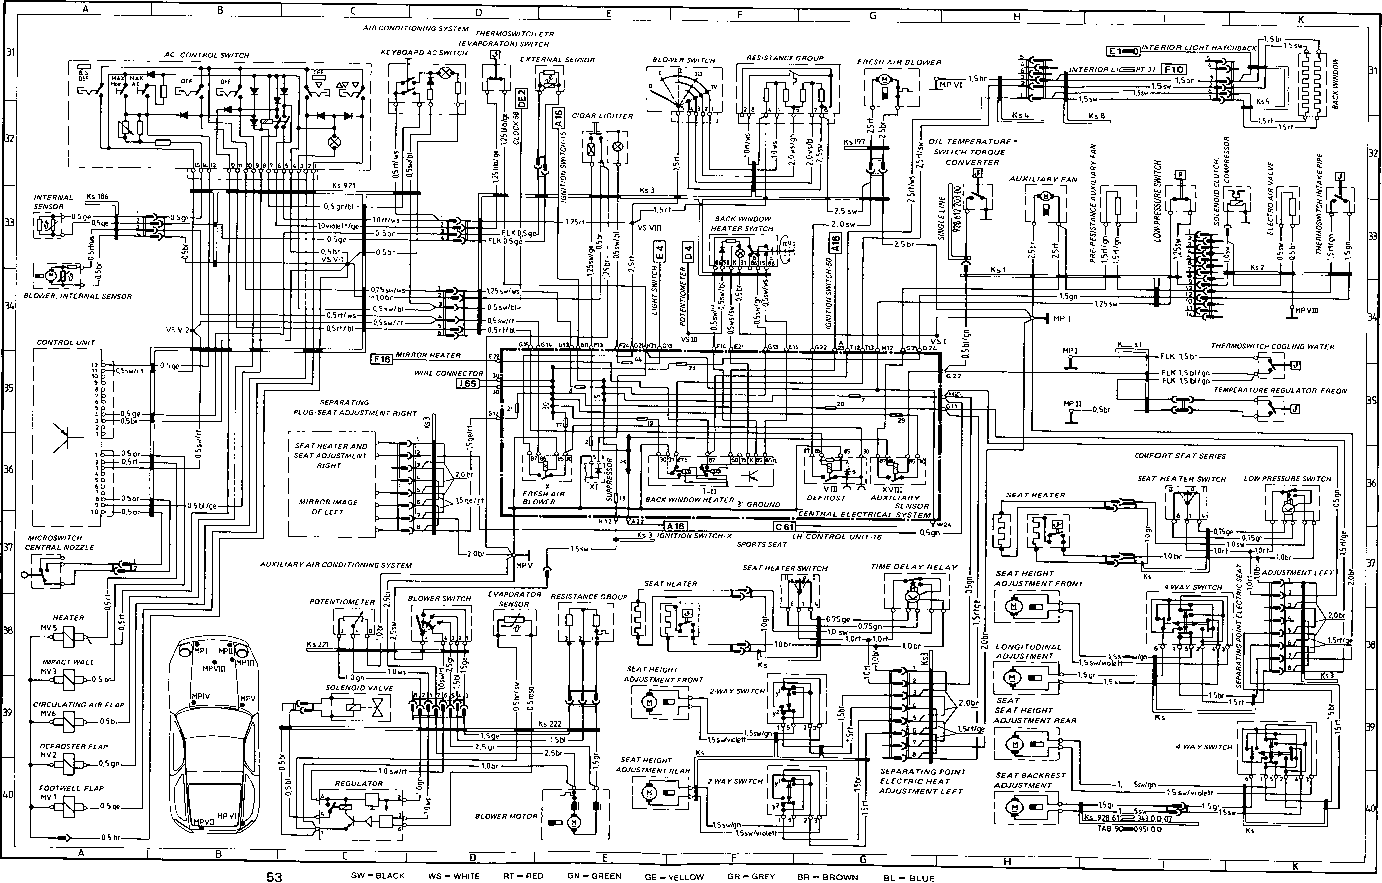 2101_17_37 porsche 928 johtokaavio porsche 911 wiring diagram porsche 911 thermostat diagram wiring 1980 porsche 911 wiring diagram at n-0.co